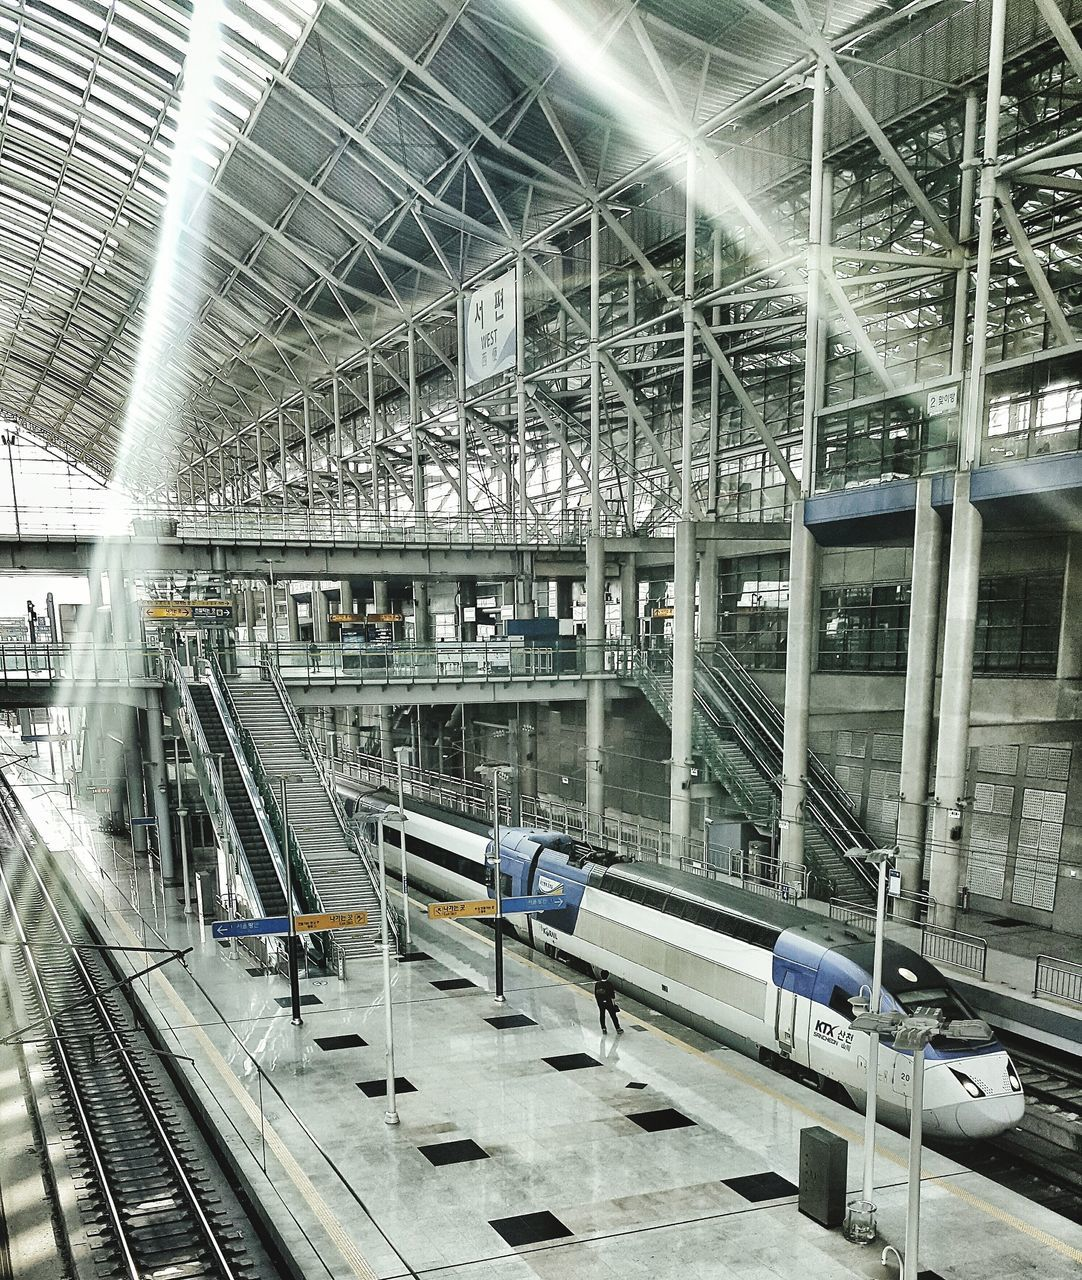 indoors, ceiling, architecture, illuminated, built structure, transportation, no people, modern, day